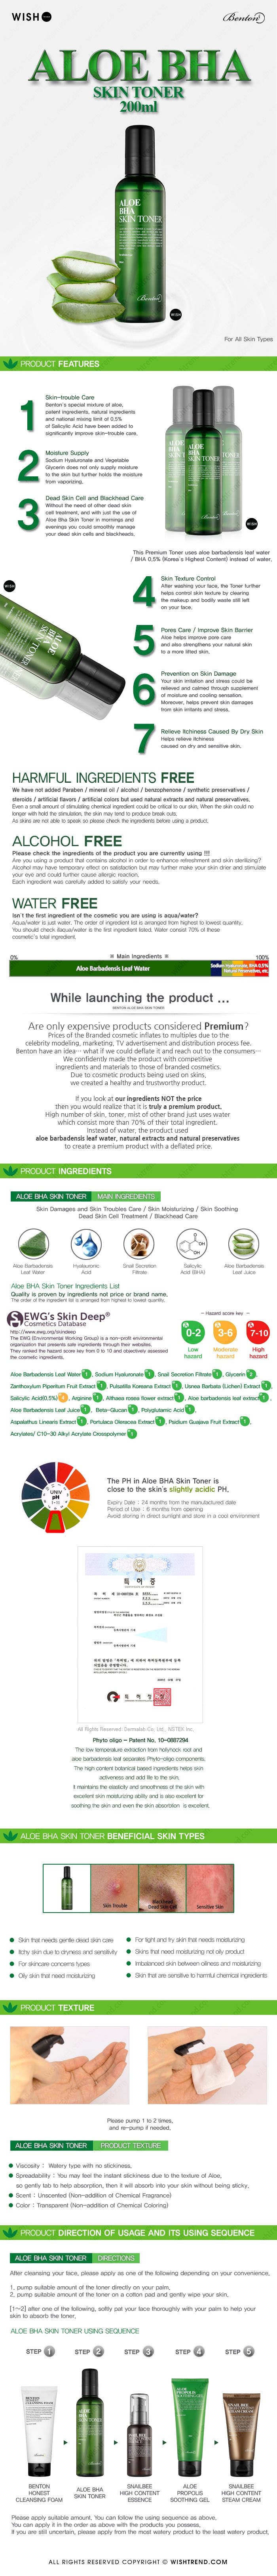 [BENTON] Aloe Bha Skin Toner |  0.5% of salicylic acid have been added to significantly     improve skin-trouble care.